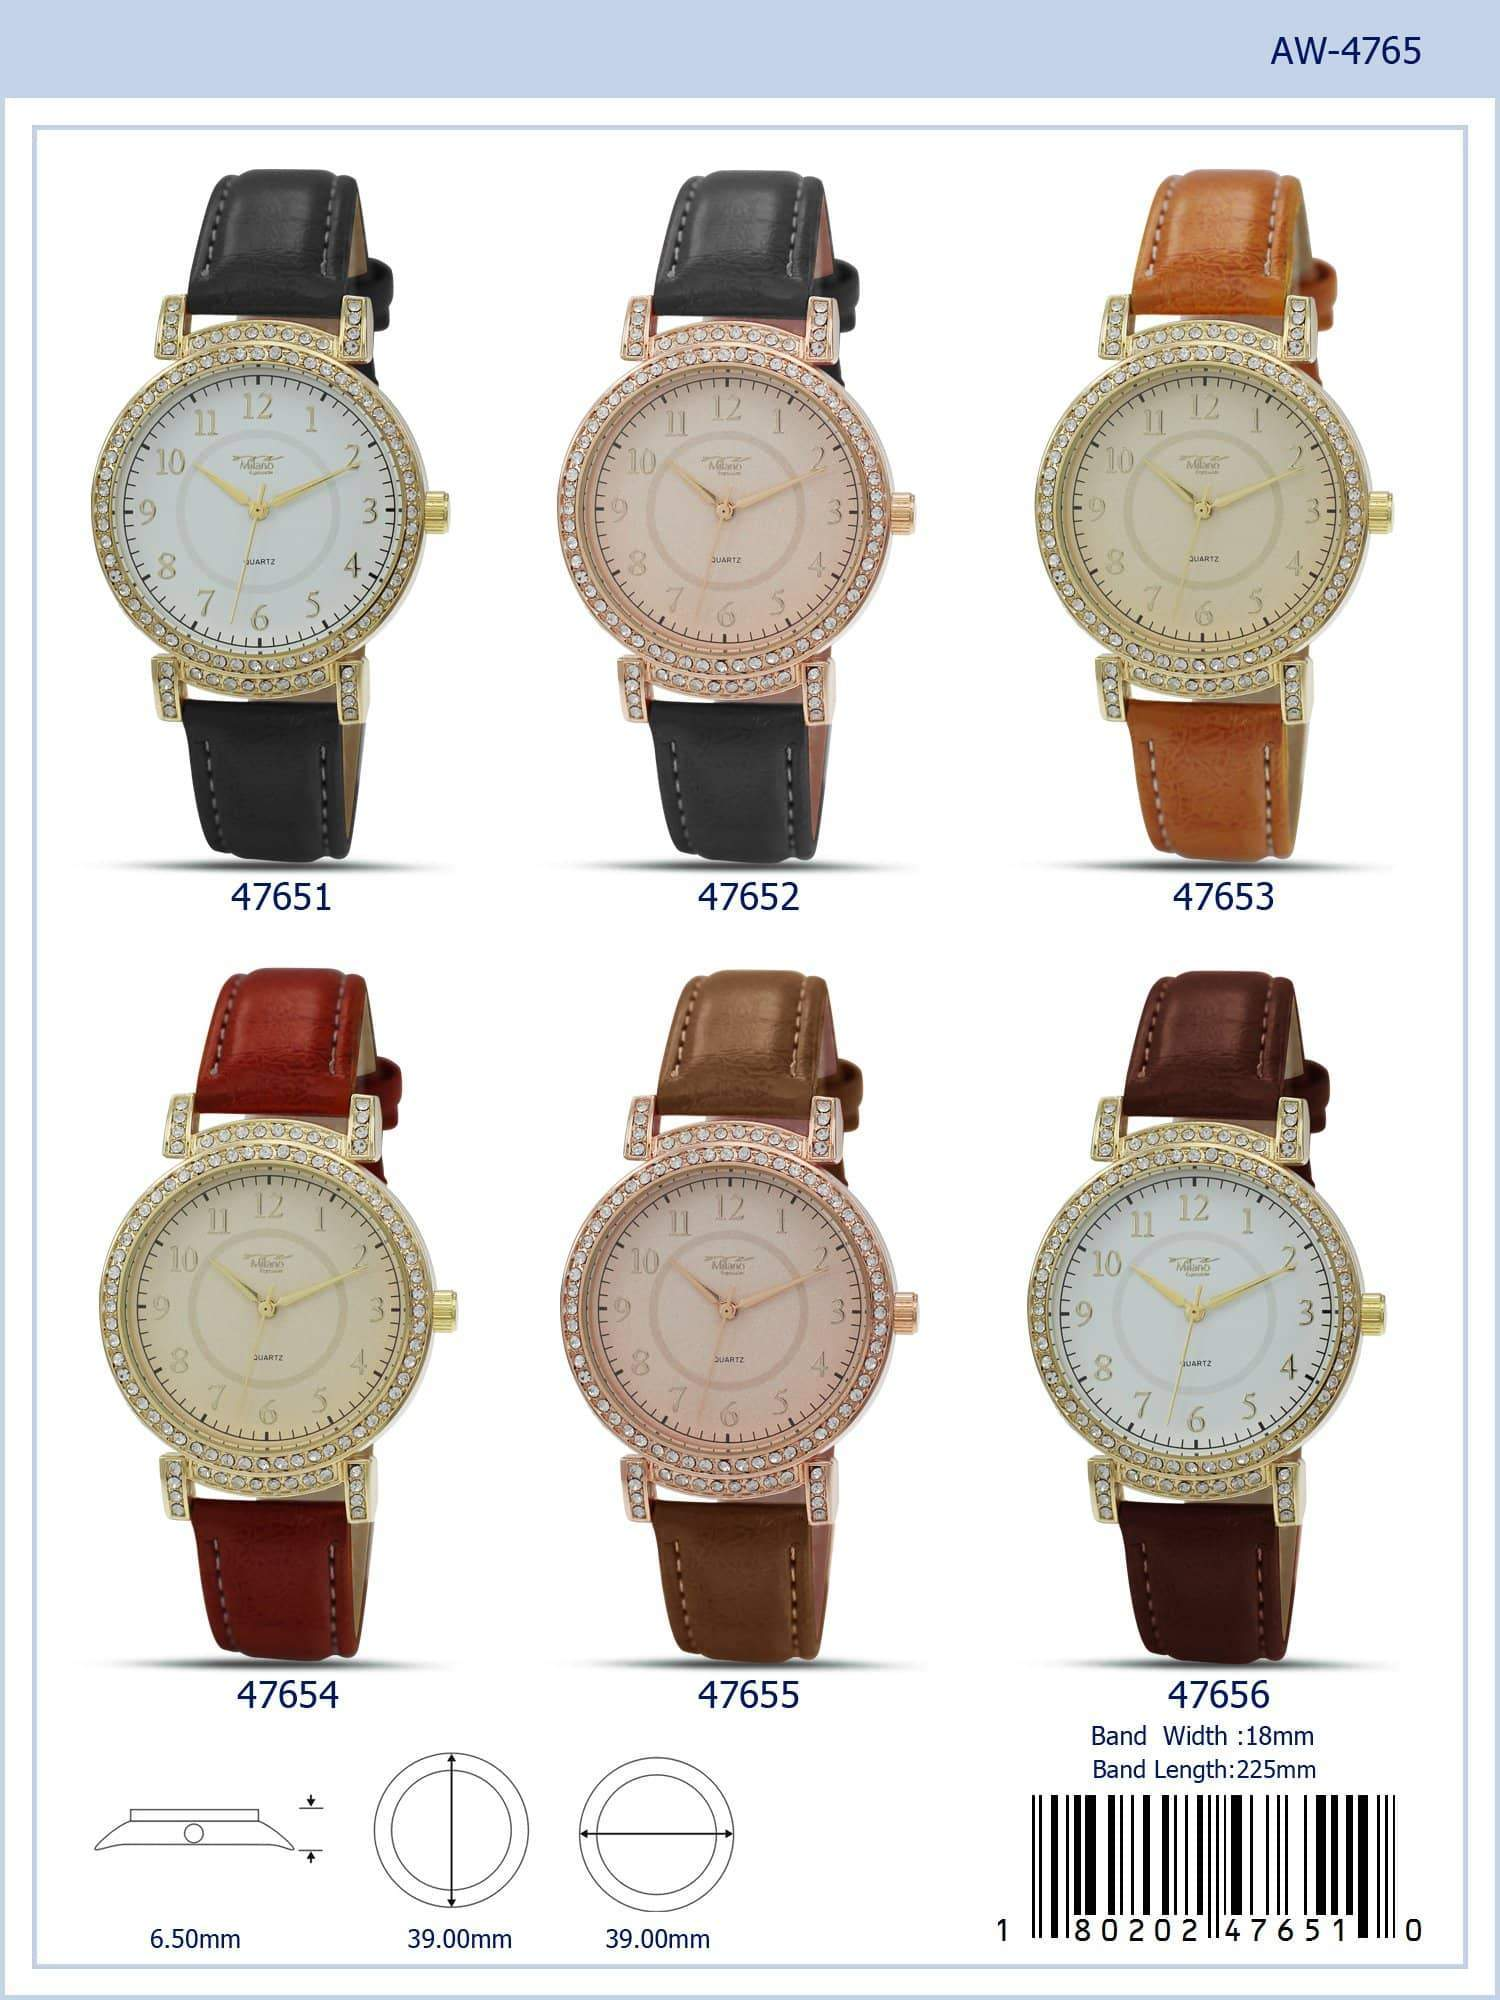 4765 - Vegan Leather Band Watch